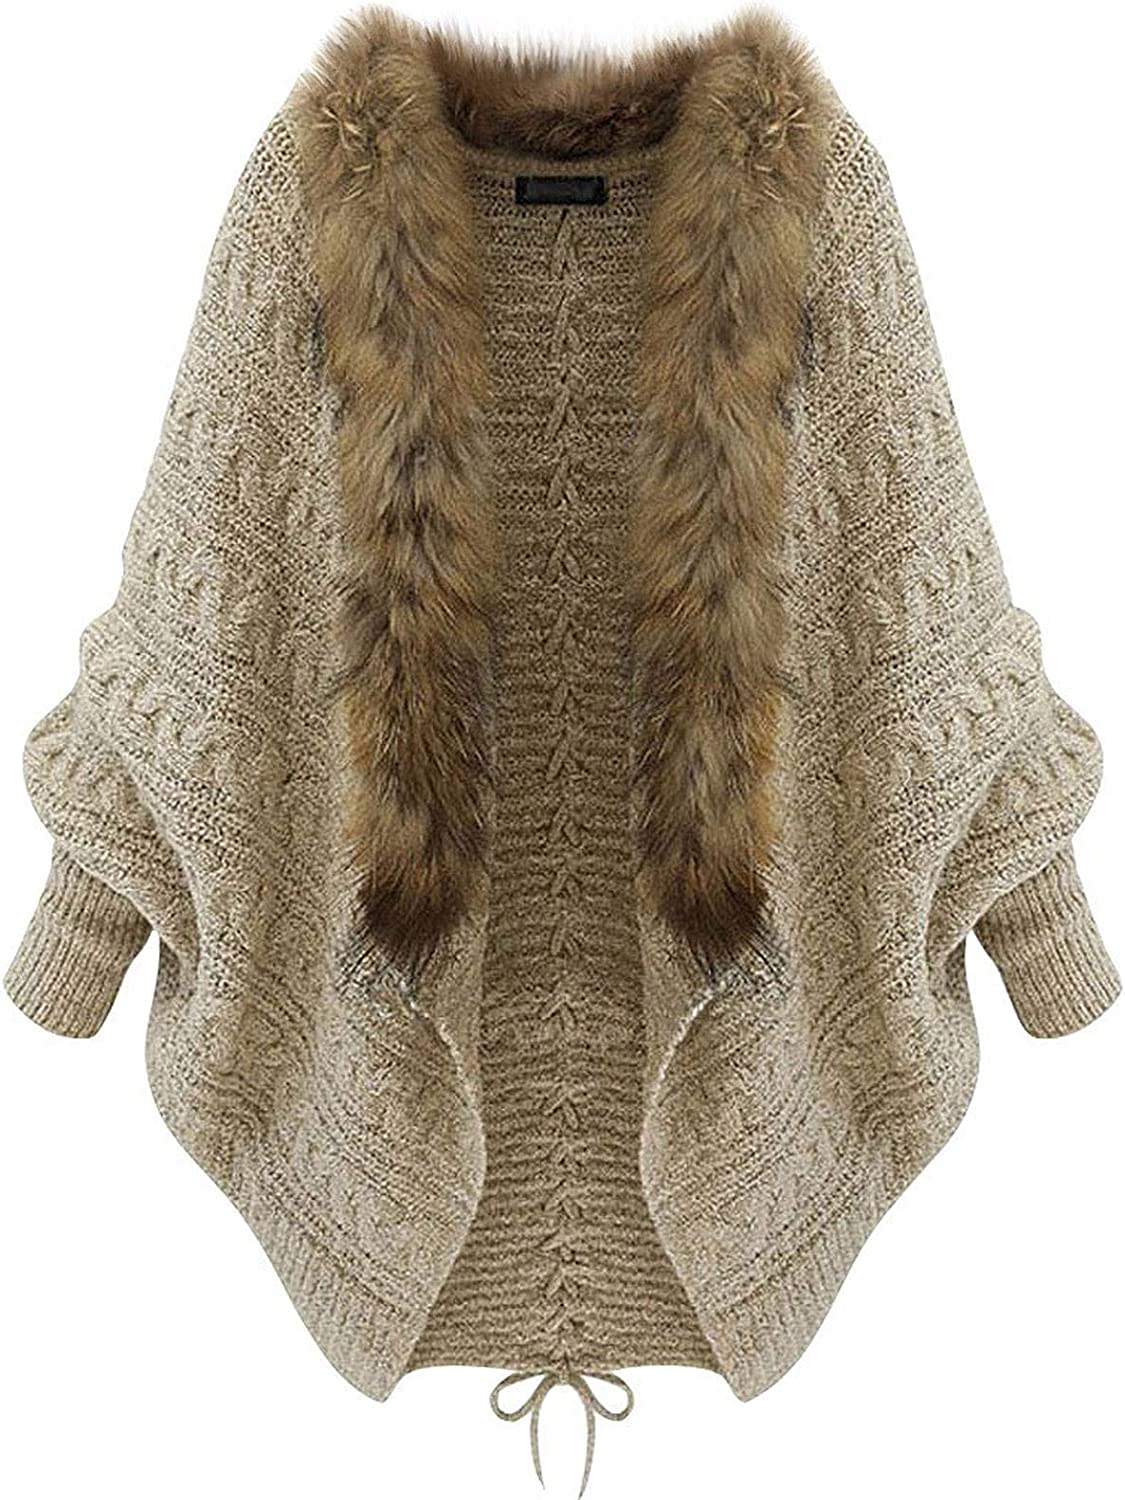 Forwelly Sweater Cardigan for Womens Casual Batwing Sleeve Knit Jacket Overcoat Fashion Plain Open Front Coat